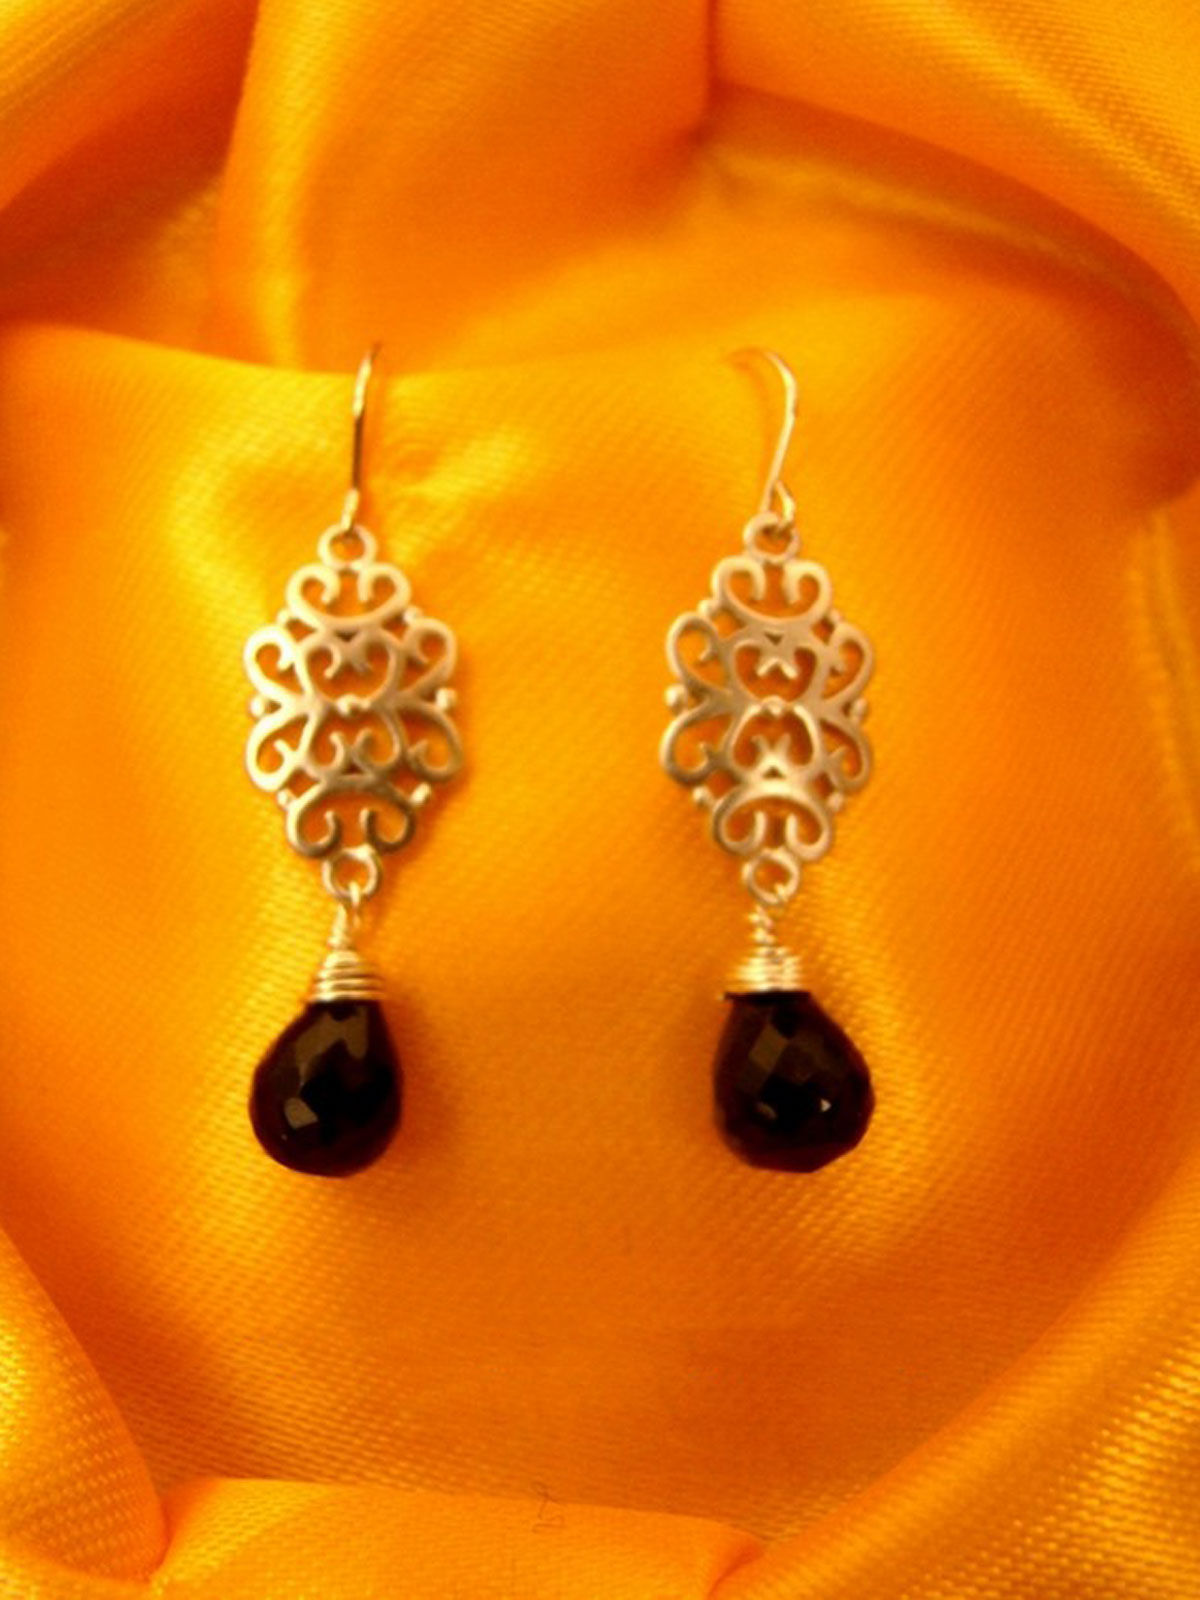 The Bright Night earrings